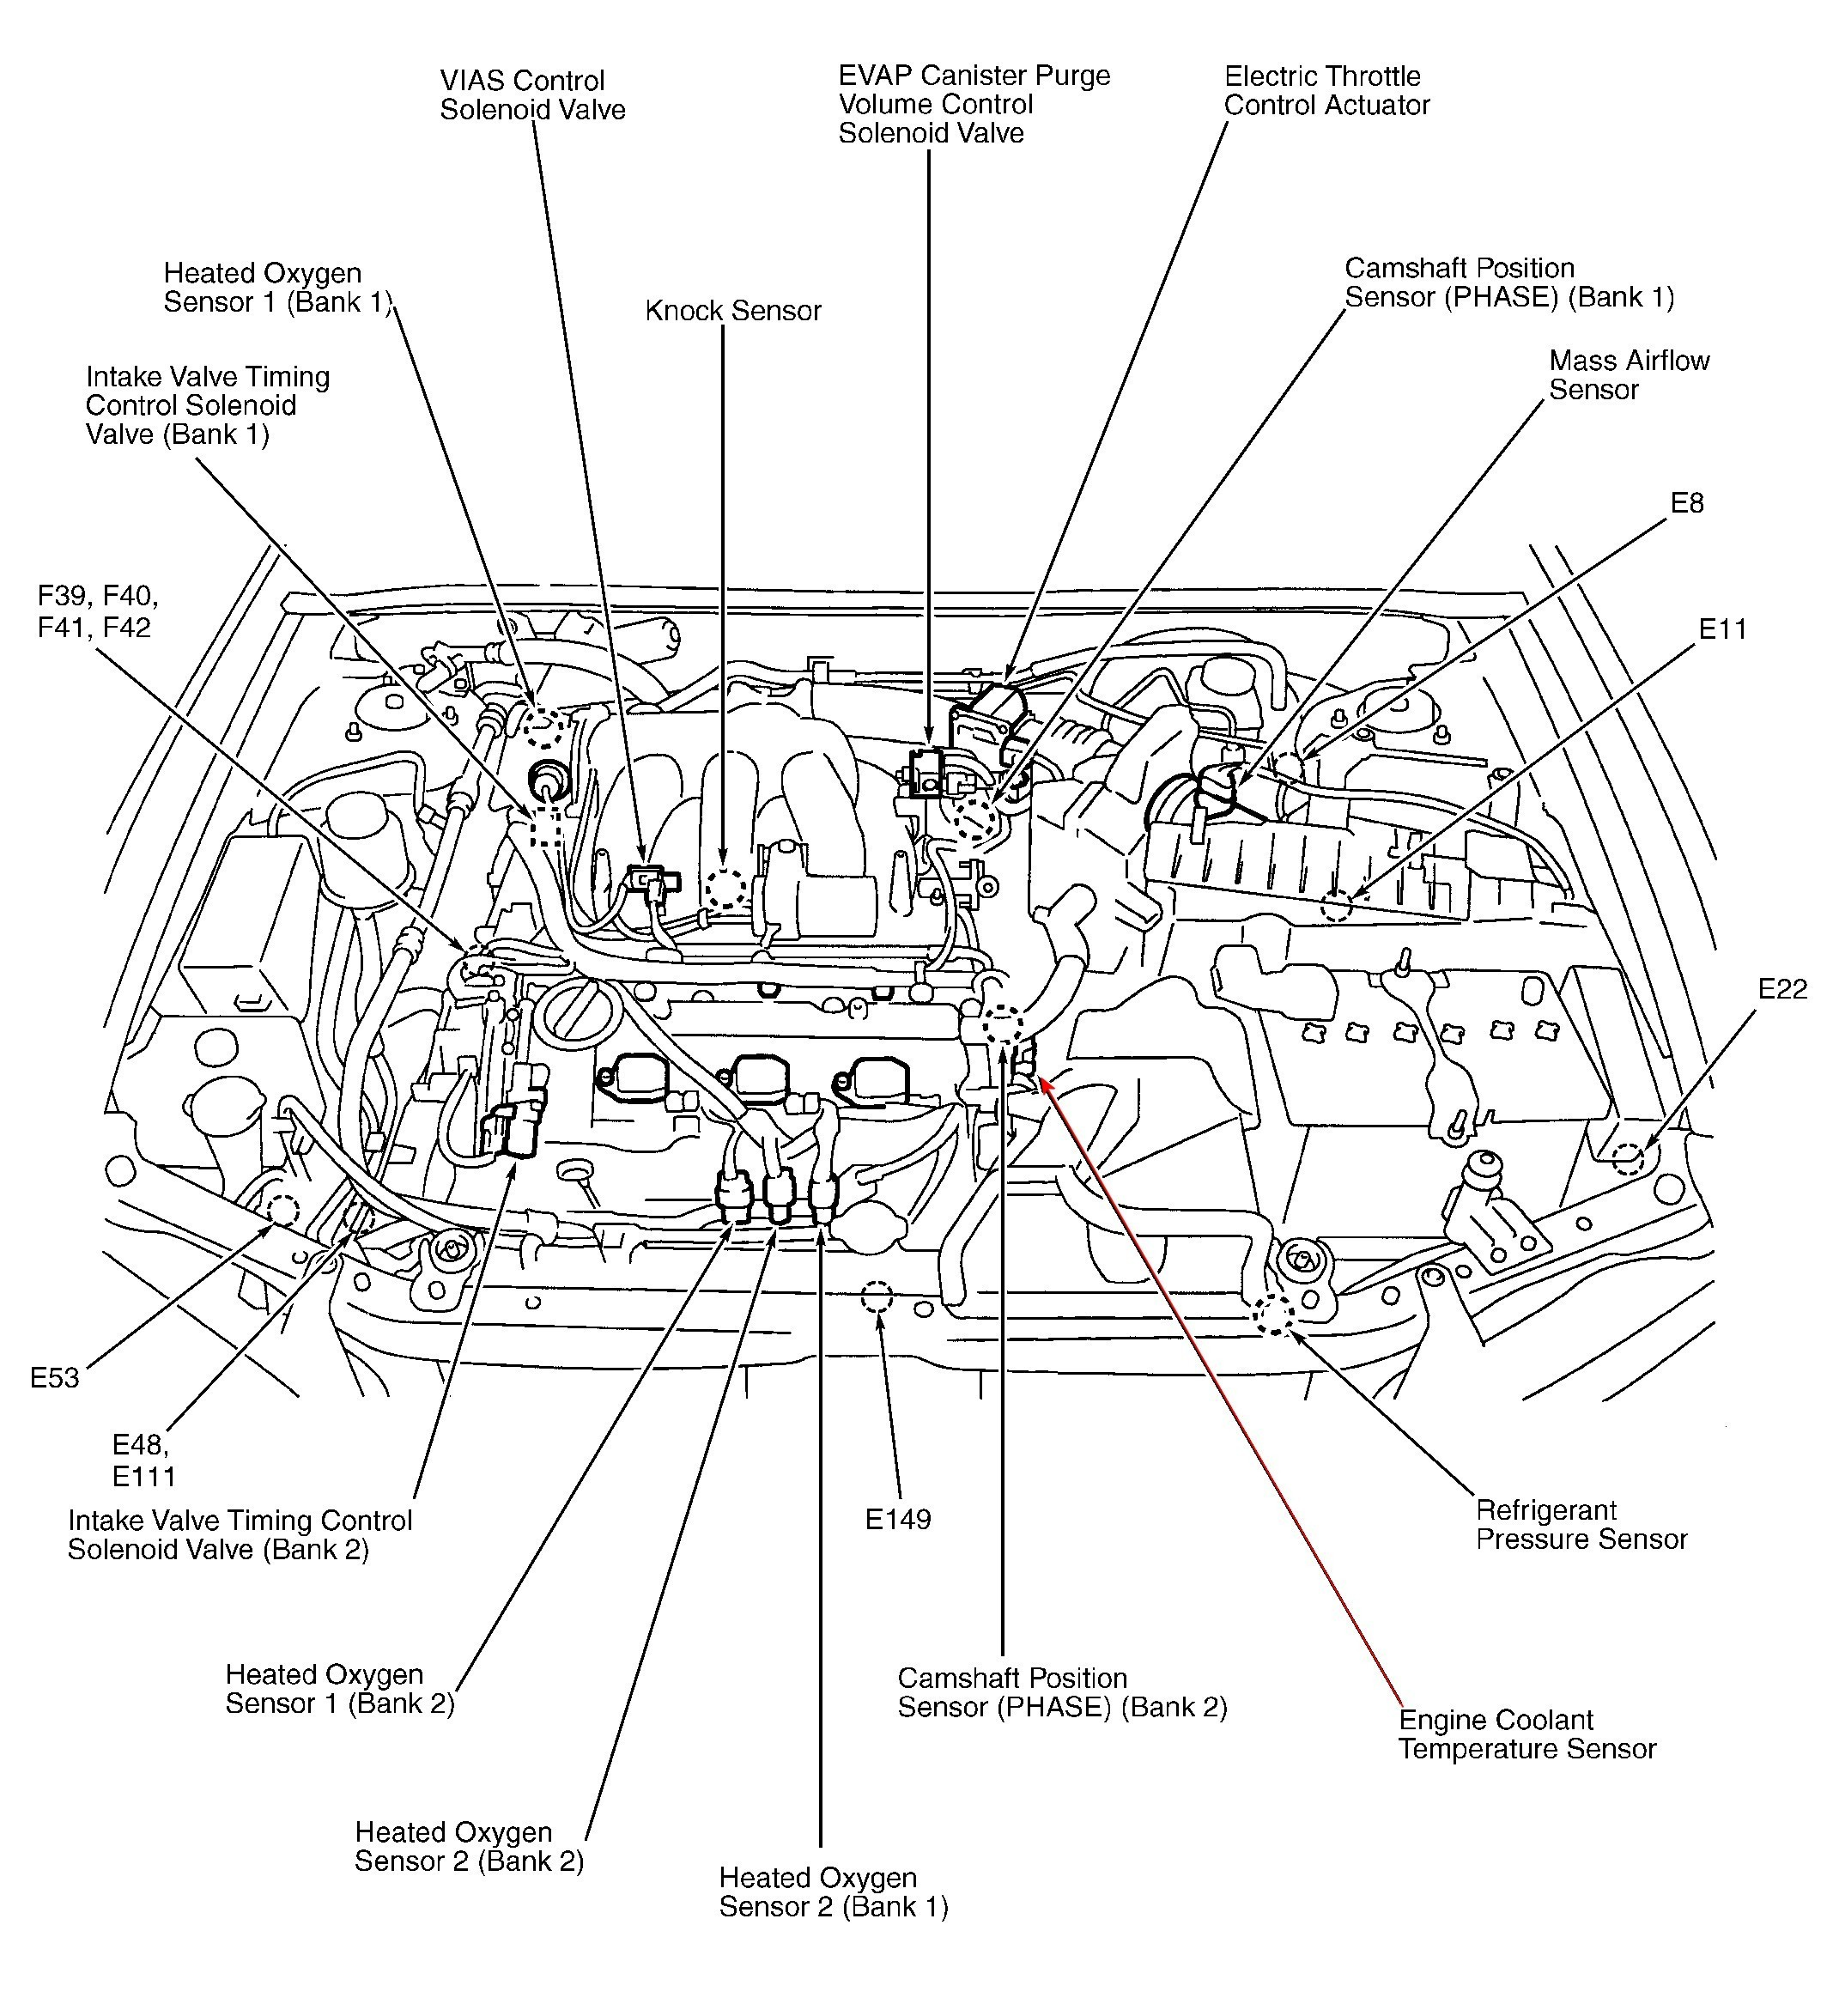 2007 Nissan Maxima Engine Diagram 2001 Nissan Maxima Radio Wiring Diagram Shahsramblings Of 2007 Nissan Maxima Engine Diagram